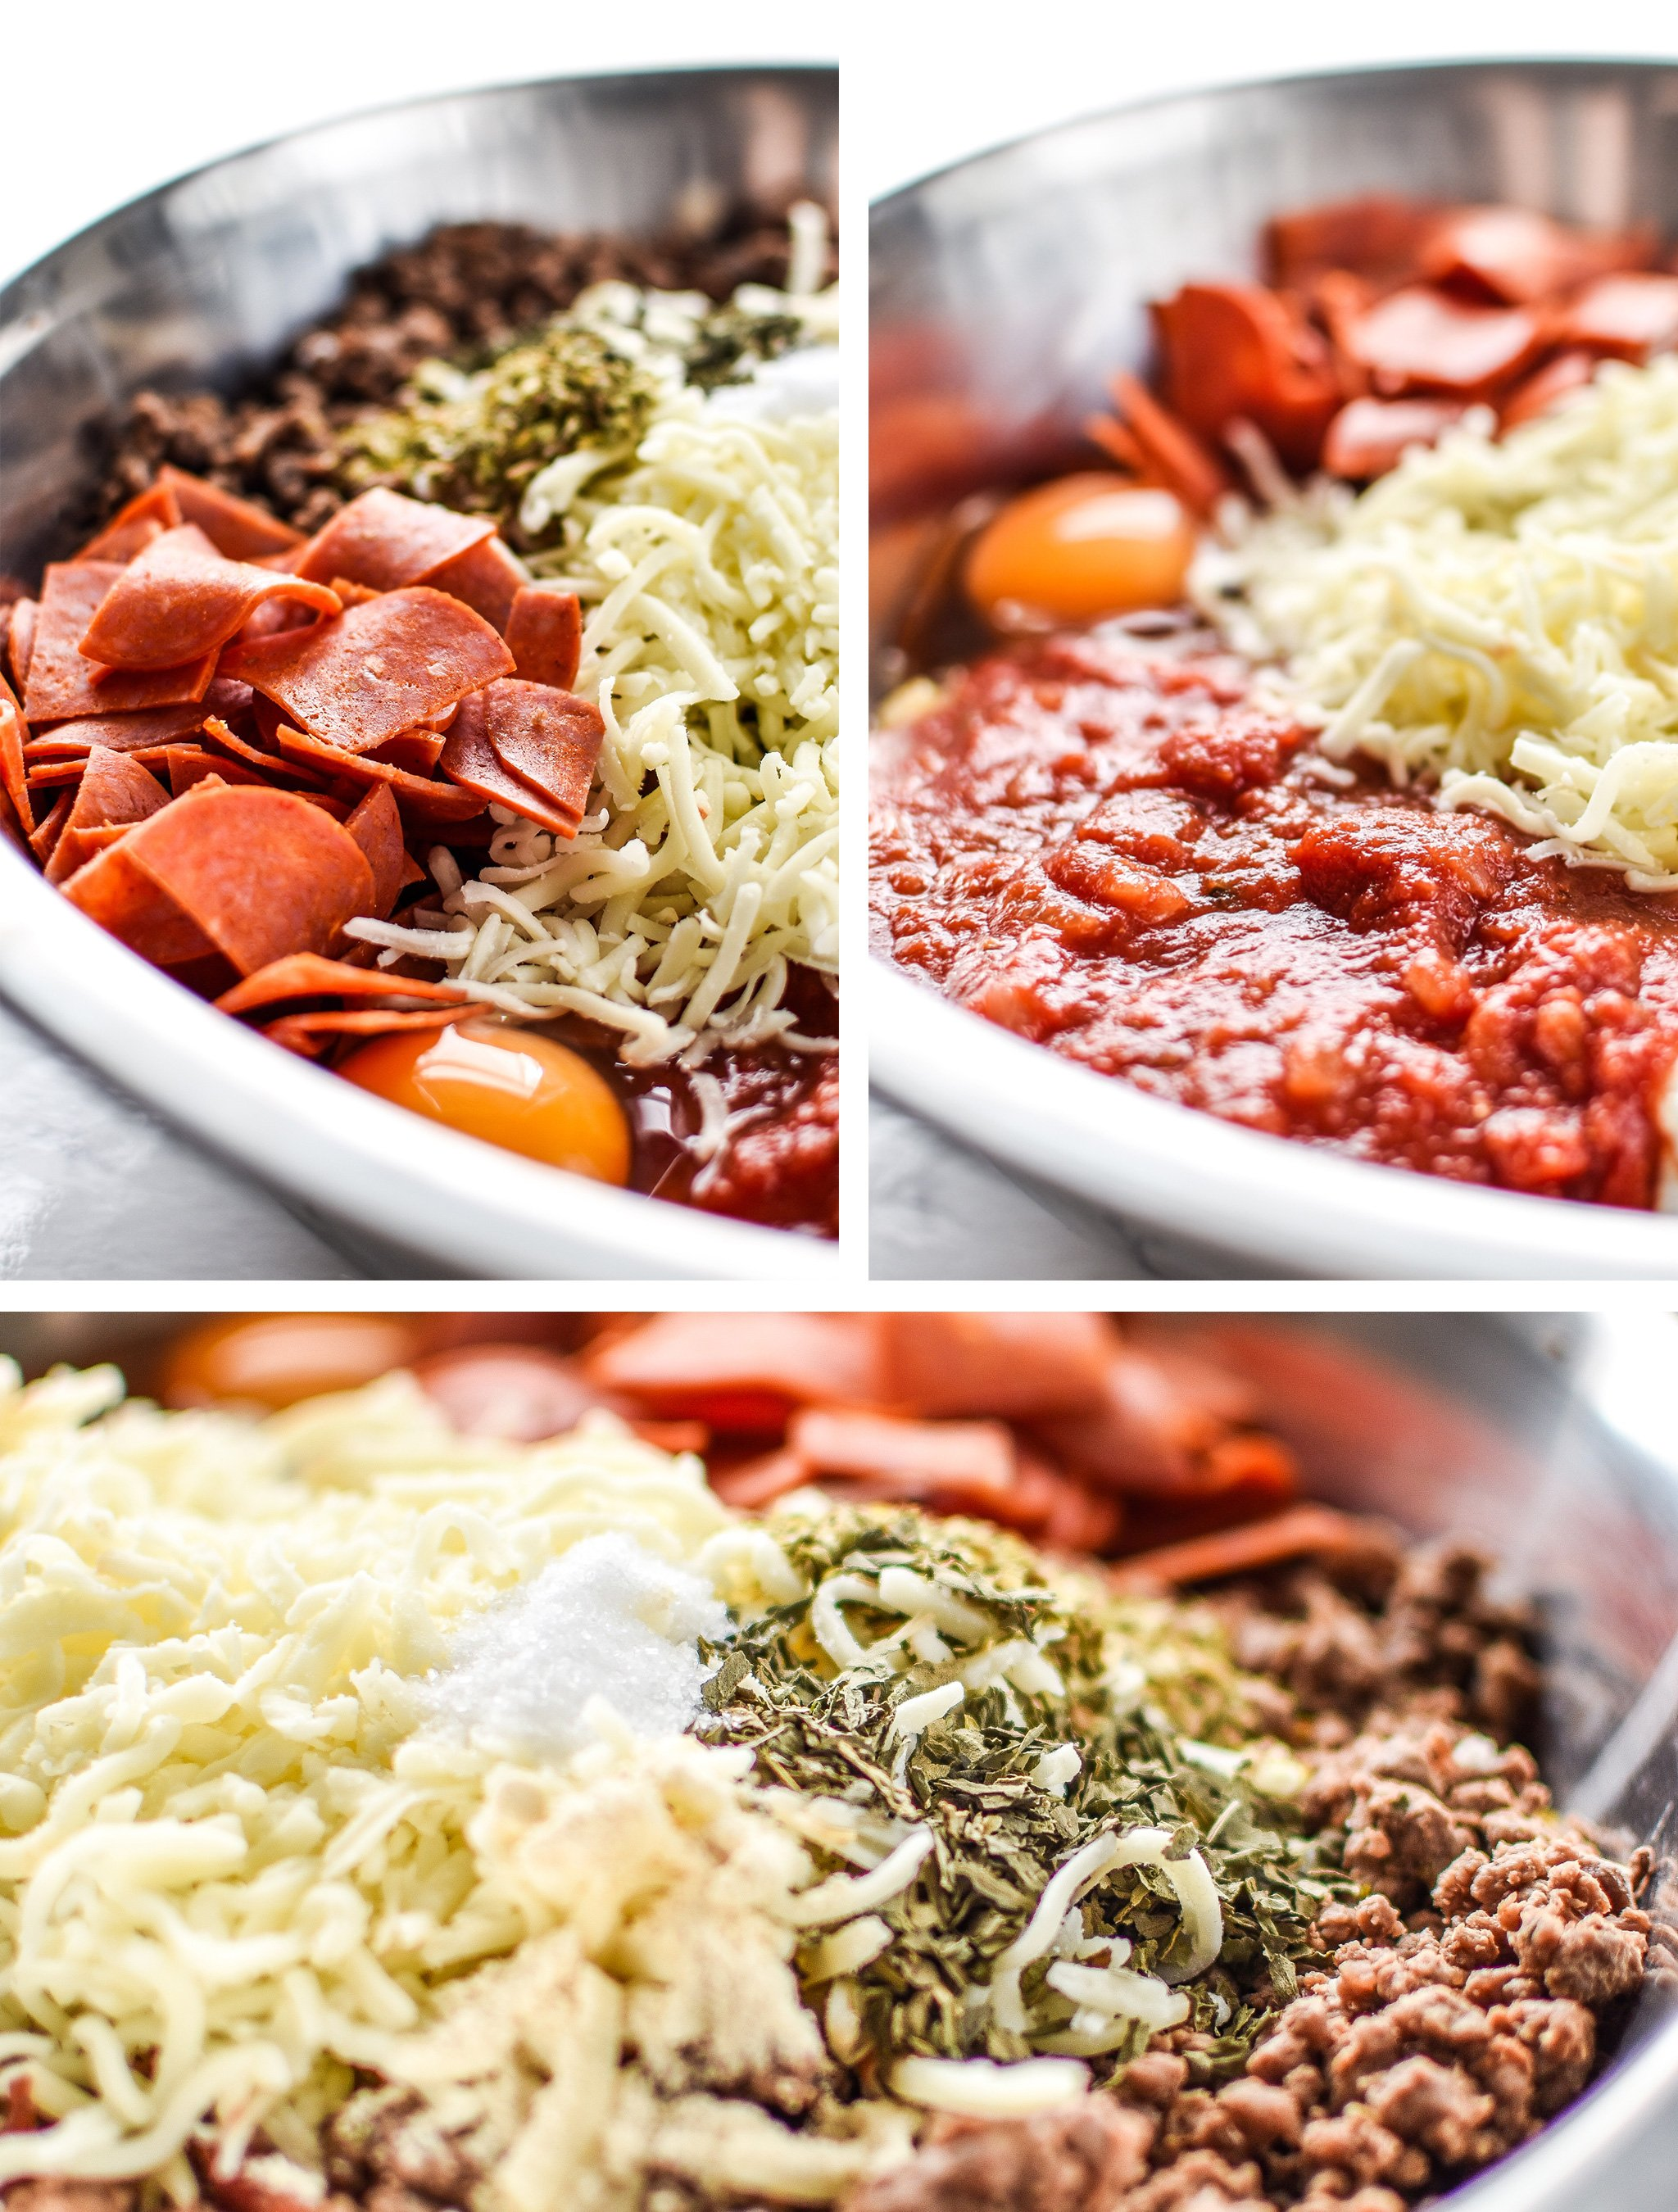 All the ingredients for the Meat Lover's Spaghetti Squash Pizza Casserole - It's pizza, but morphed into a not-that-bad-for-you spaghetti squash casserole with meat lover's toppings! - ProjectMealPlan.com